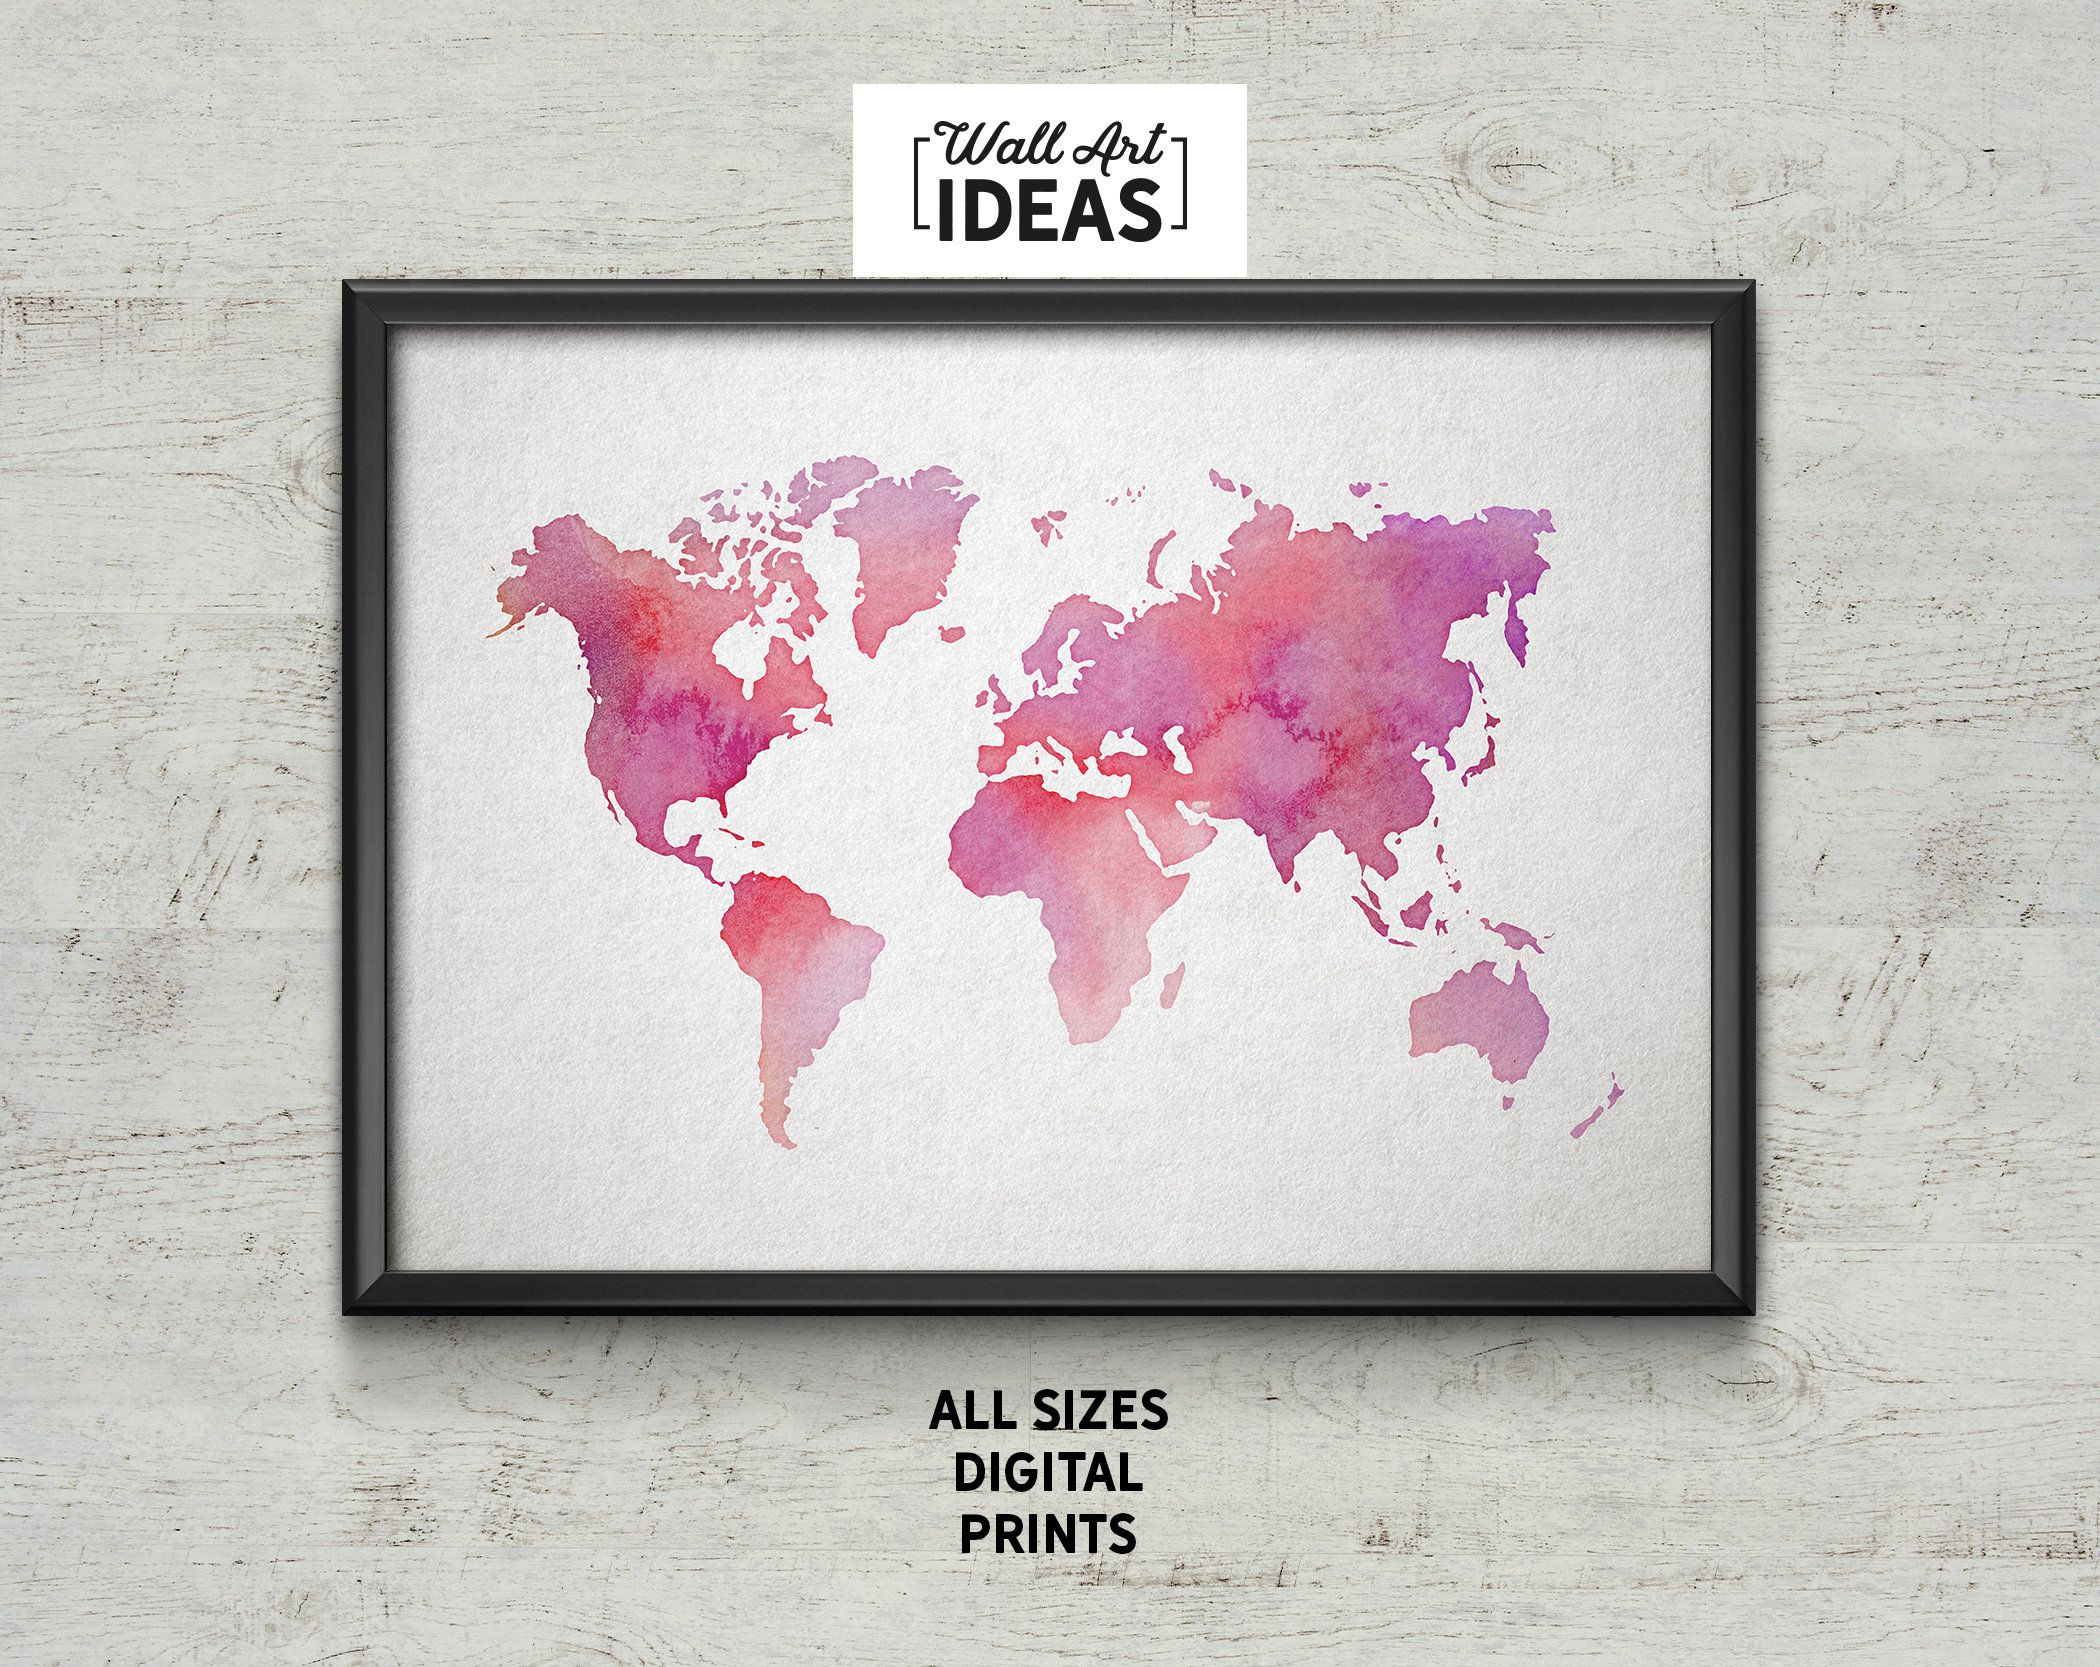 Watercolor World Map Wall Art Poster Digital Prints Images - A1 world map poster